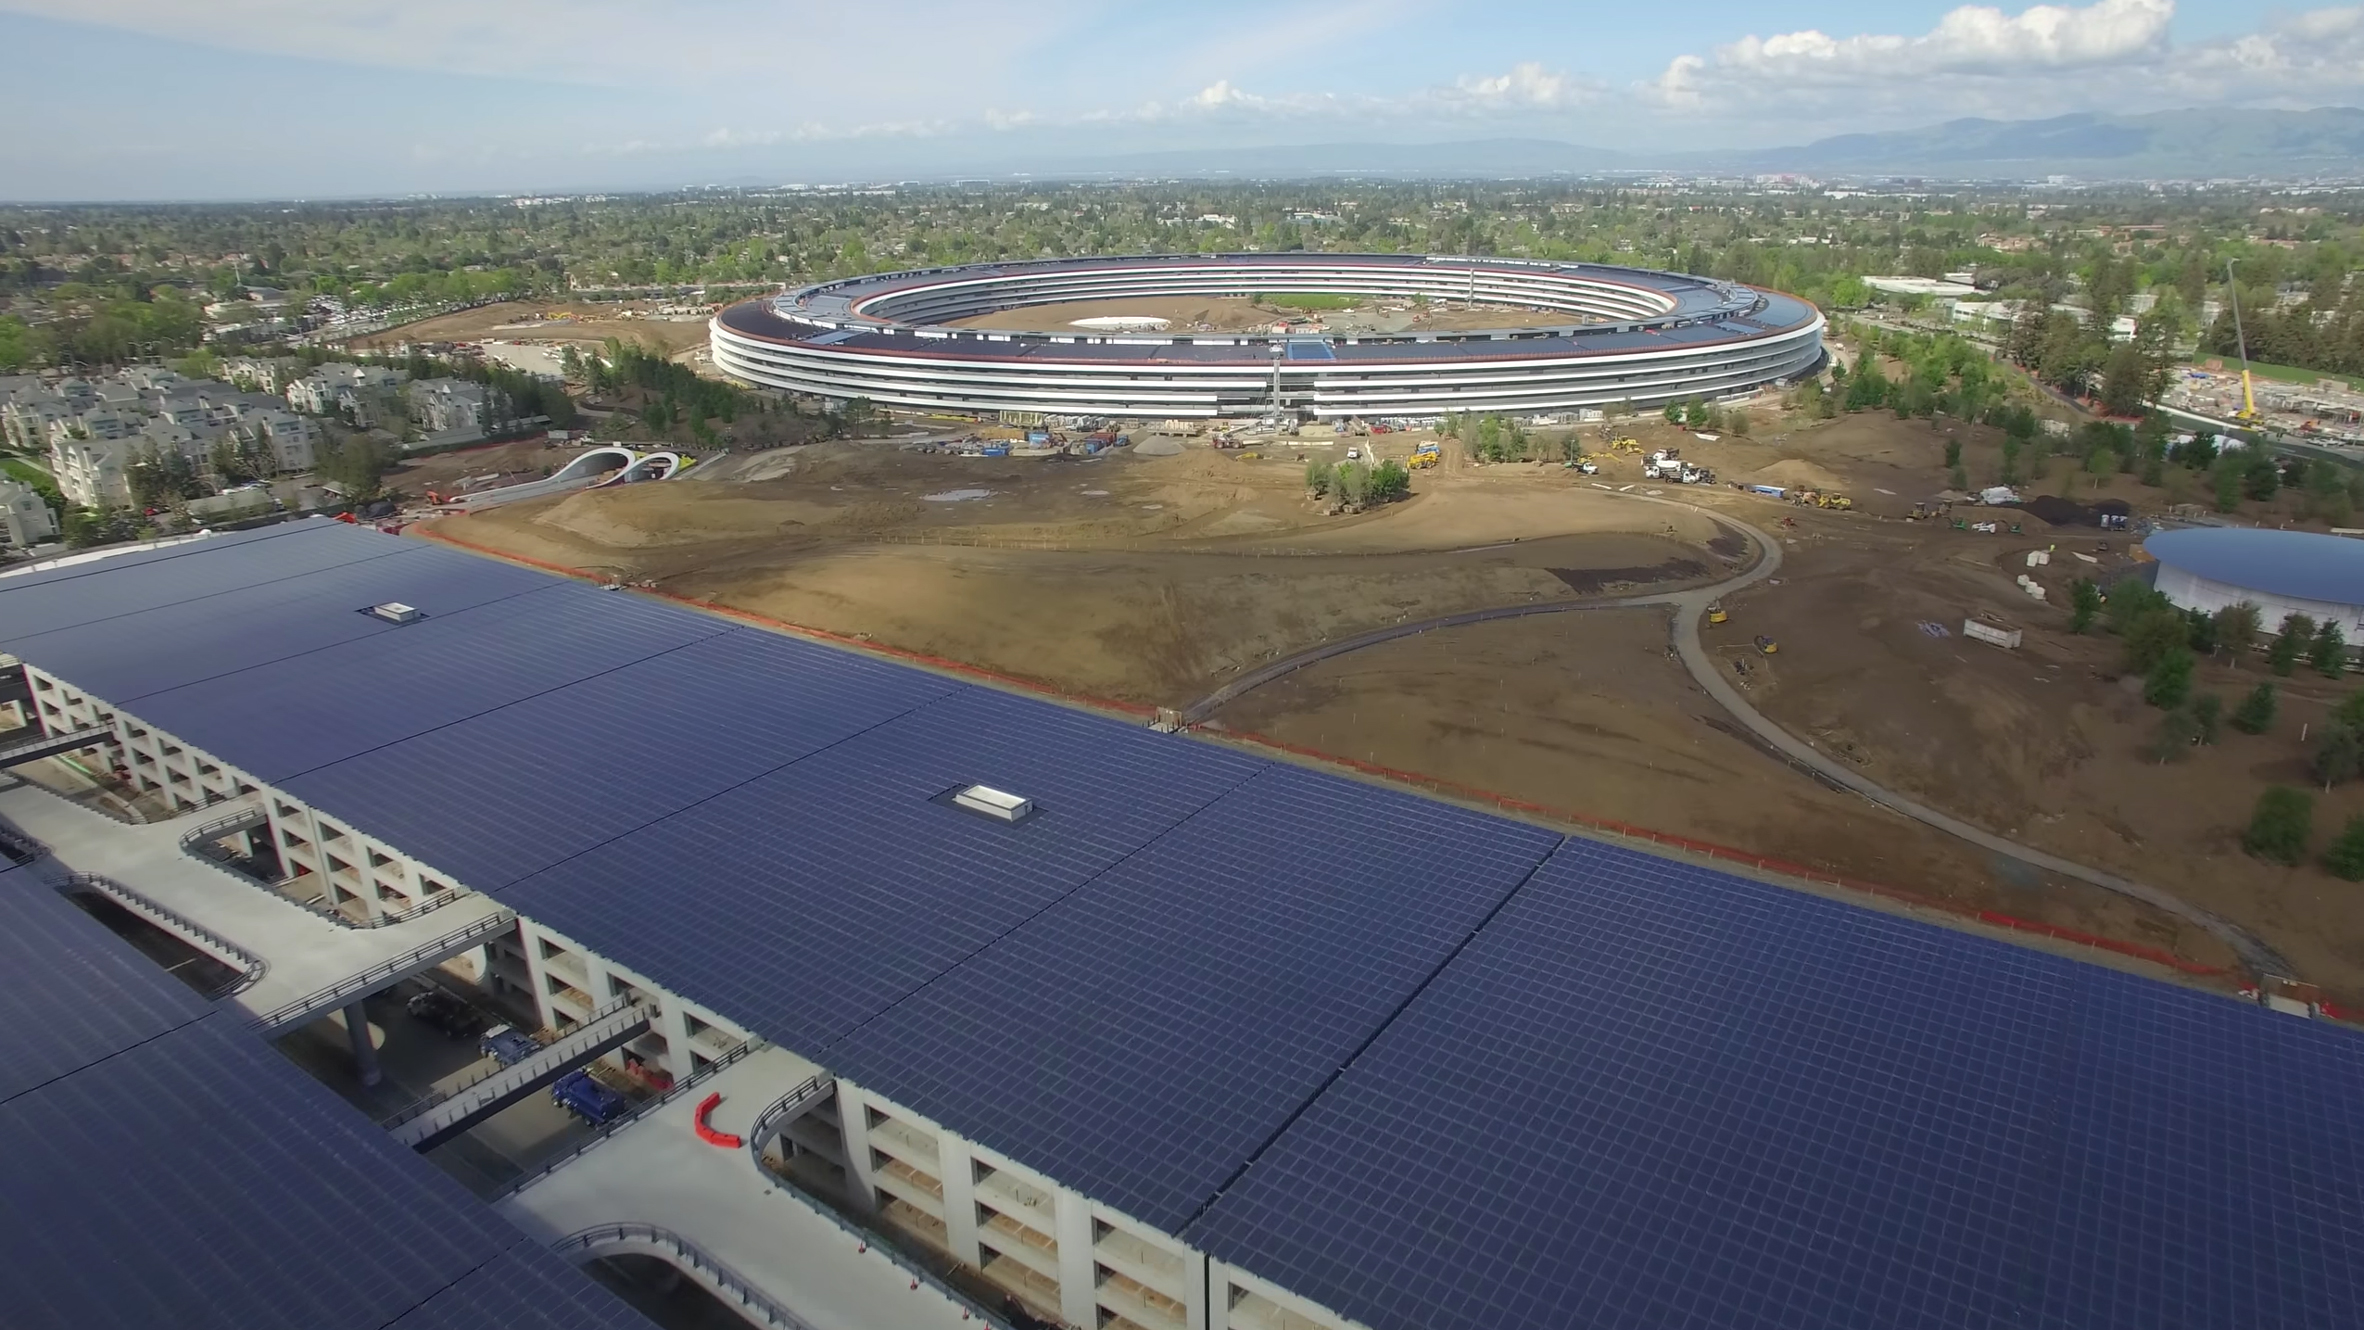 Drone footage captures Apple Park as it prepares to welcome employees